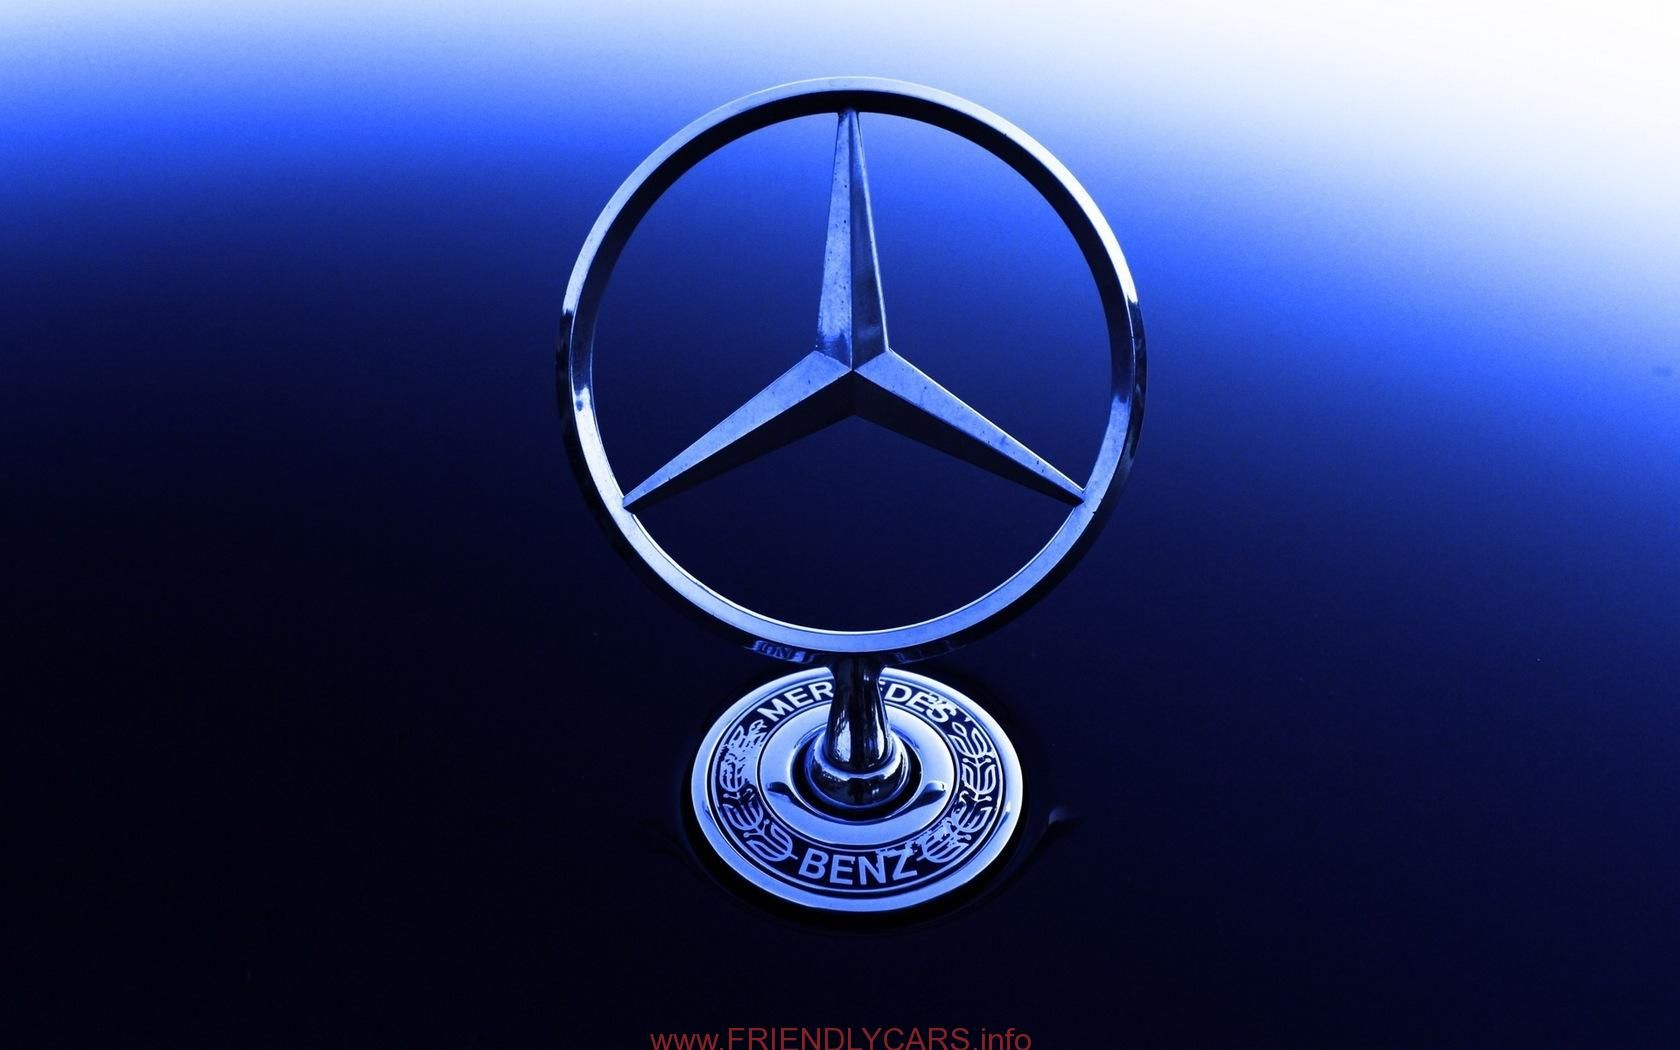 cool mercedes logo wallpaper iphone car images hd roundup 40 amazing mercedes benz hd wallpapers. Black Bedroom Furniture Sets. Home Design Ideas